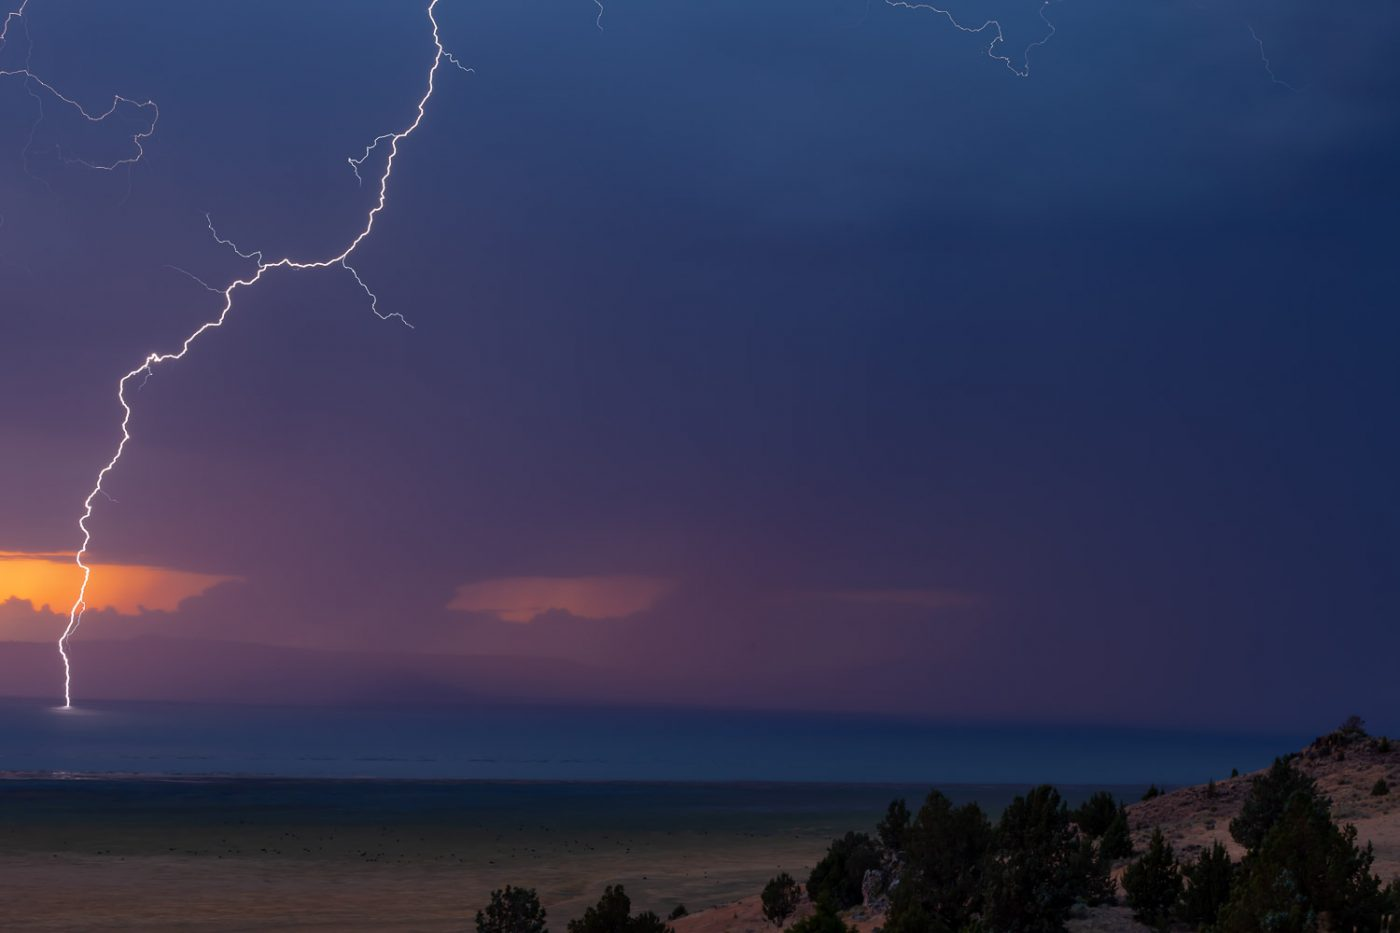 A lightning bolt strikes the surface of Goose Lake below colorful sunset clouds.